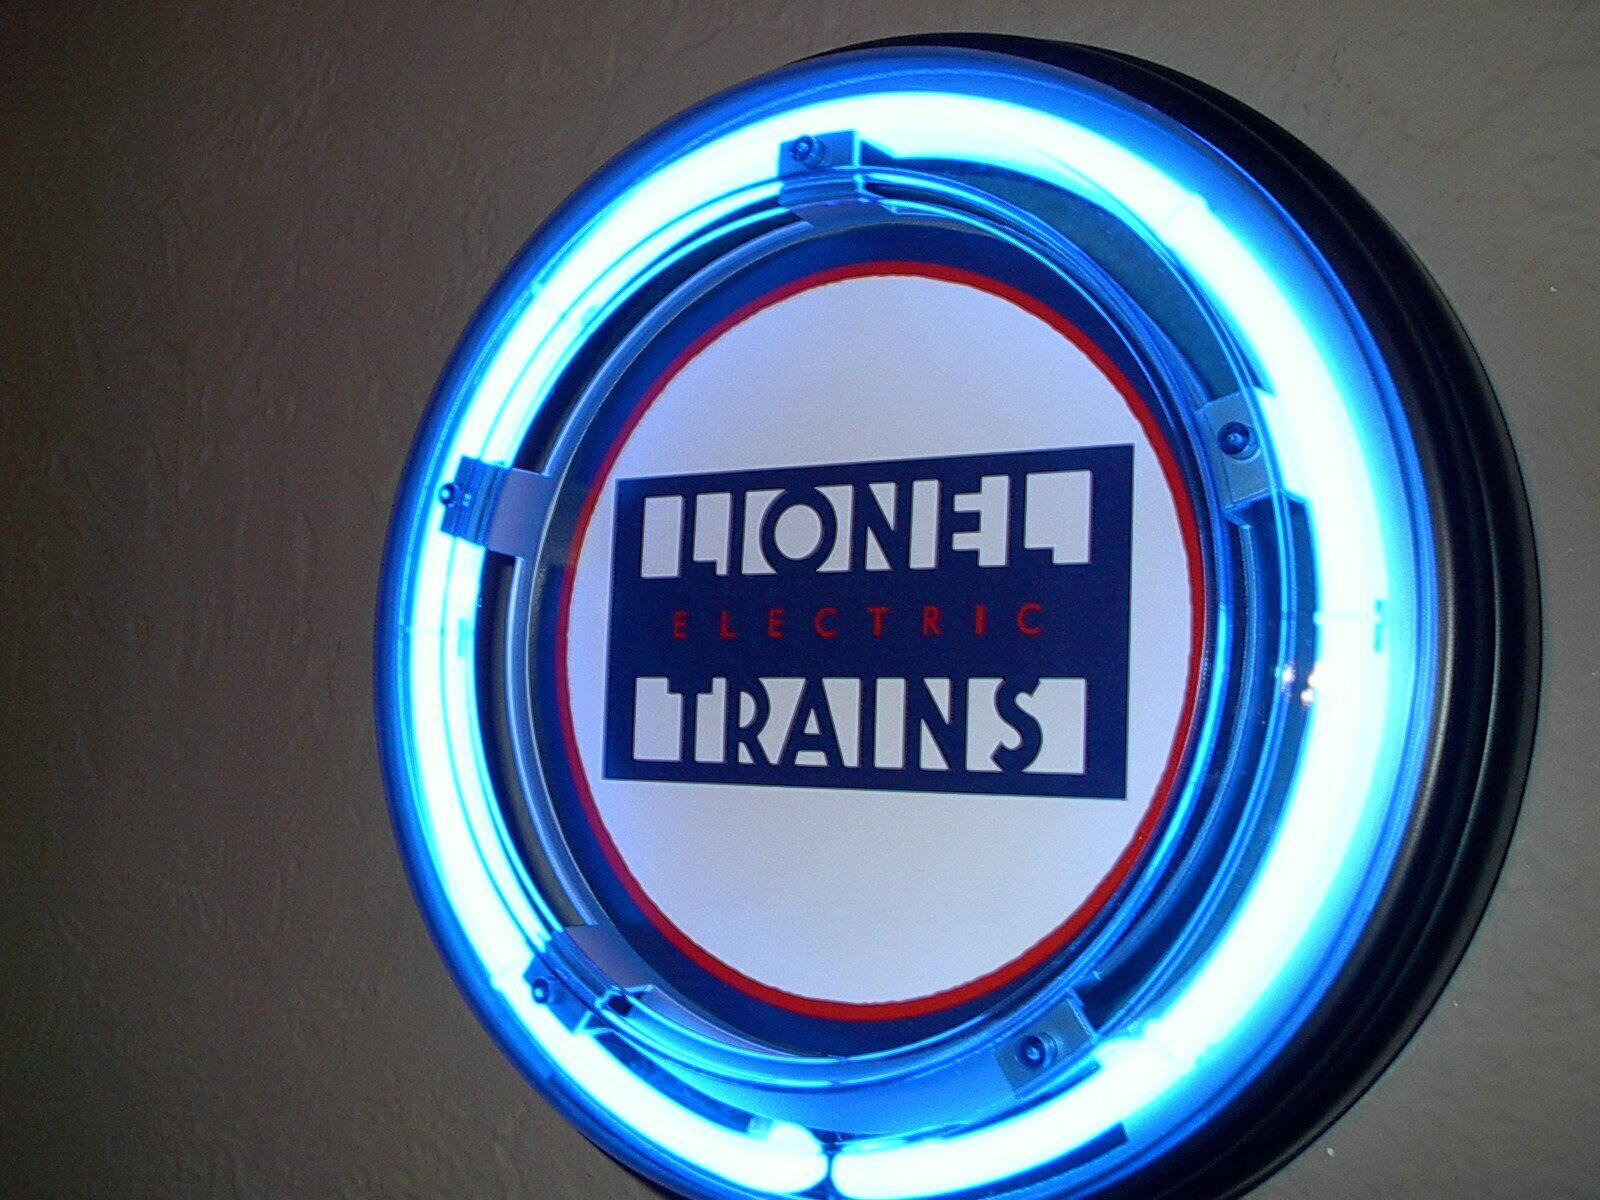 Lionel Trains Toy Store Adgreenising Man Cave bluee Neon Wall Sign